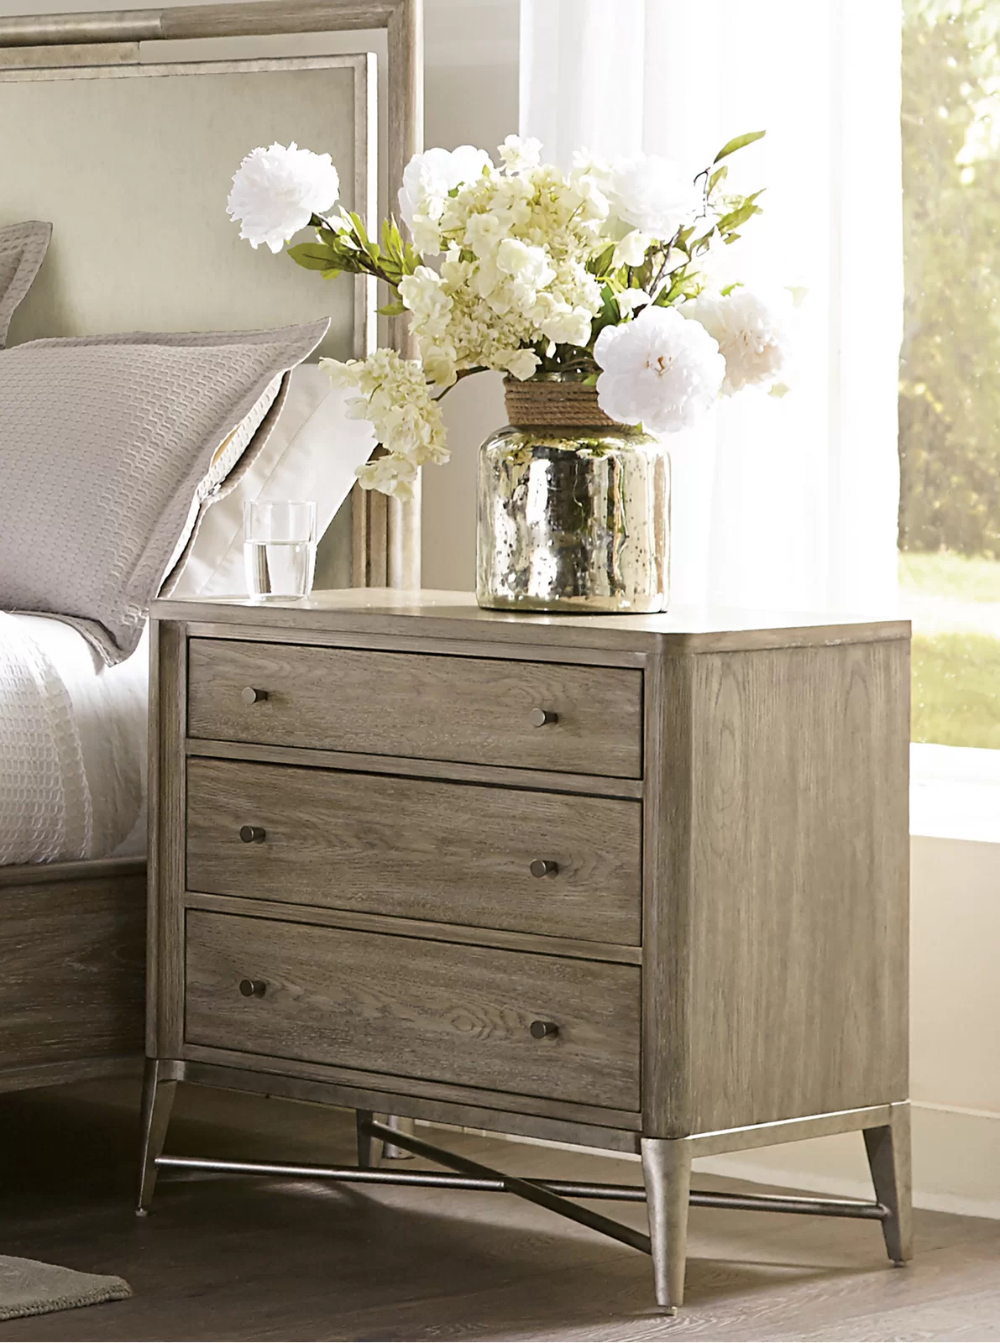 Cheetham 3 Drawer Nightstand In Natural In 2021 Drawer Nightstand 3 Drawer Nightstand Furniture [ 1343 x 1000 Pixel ]